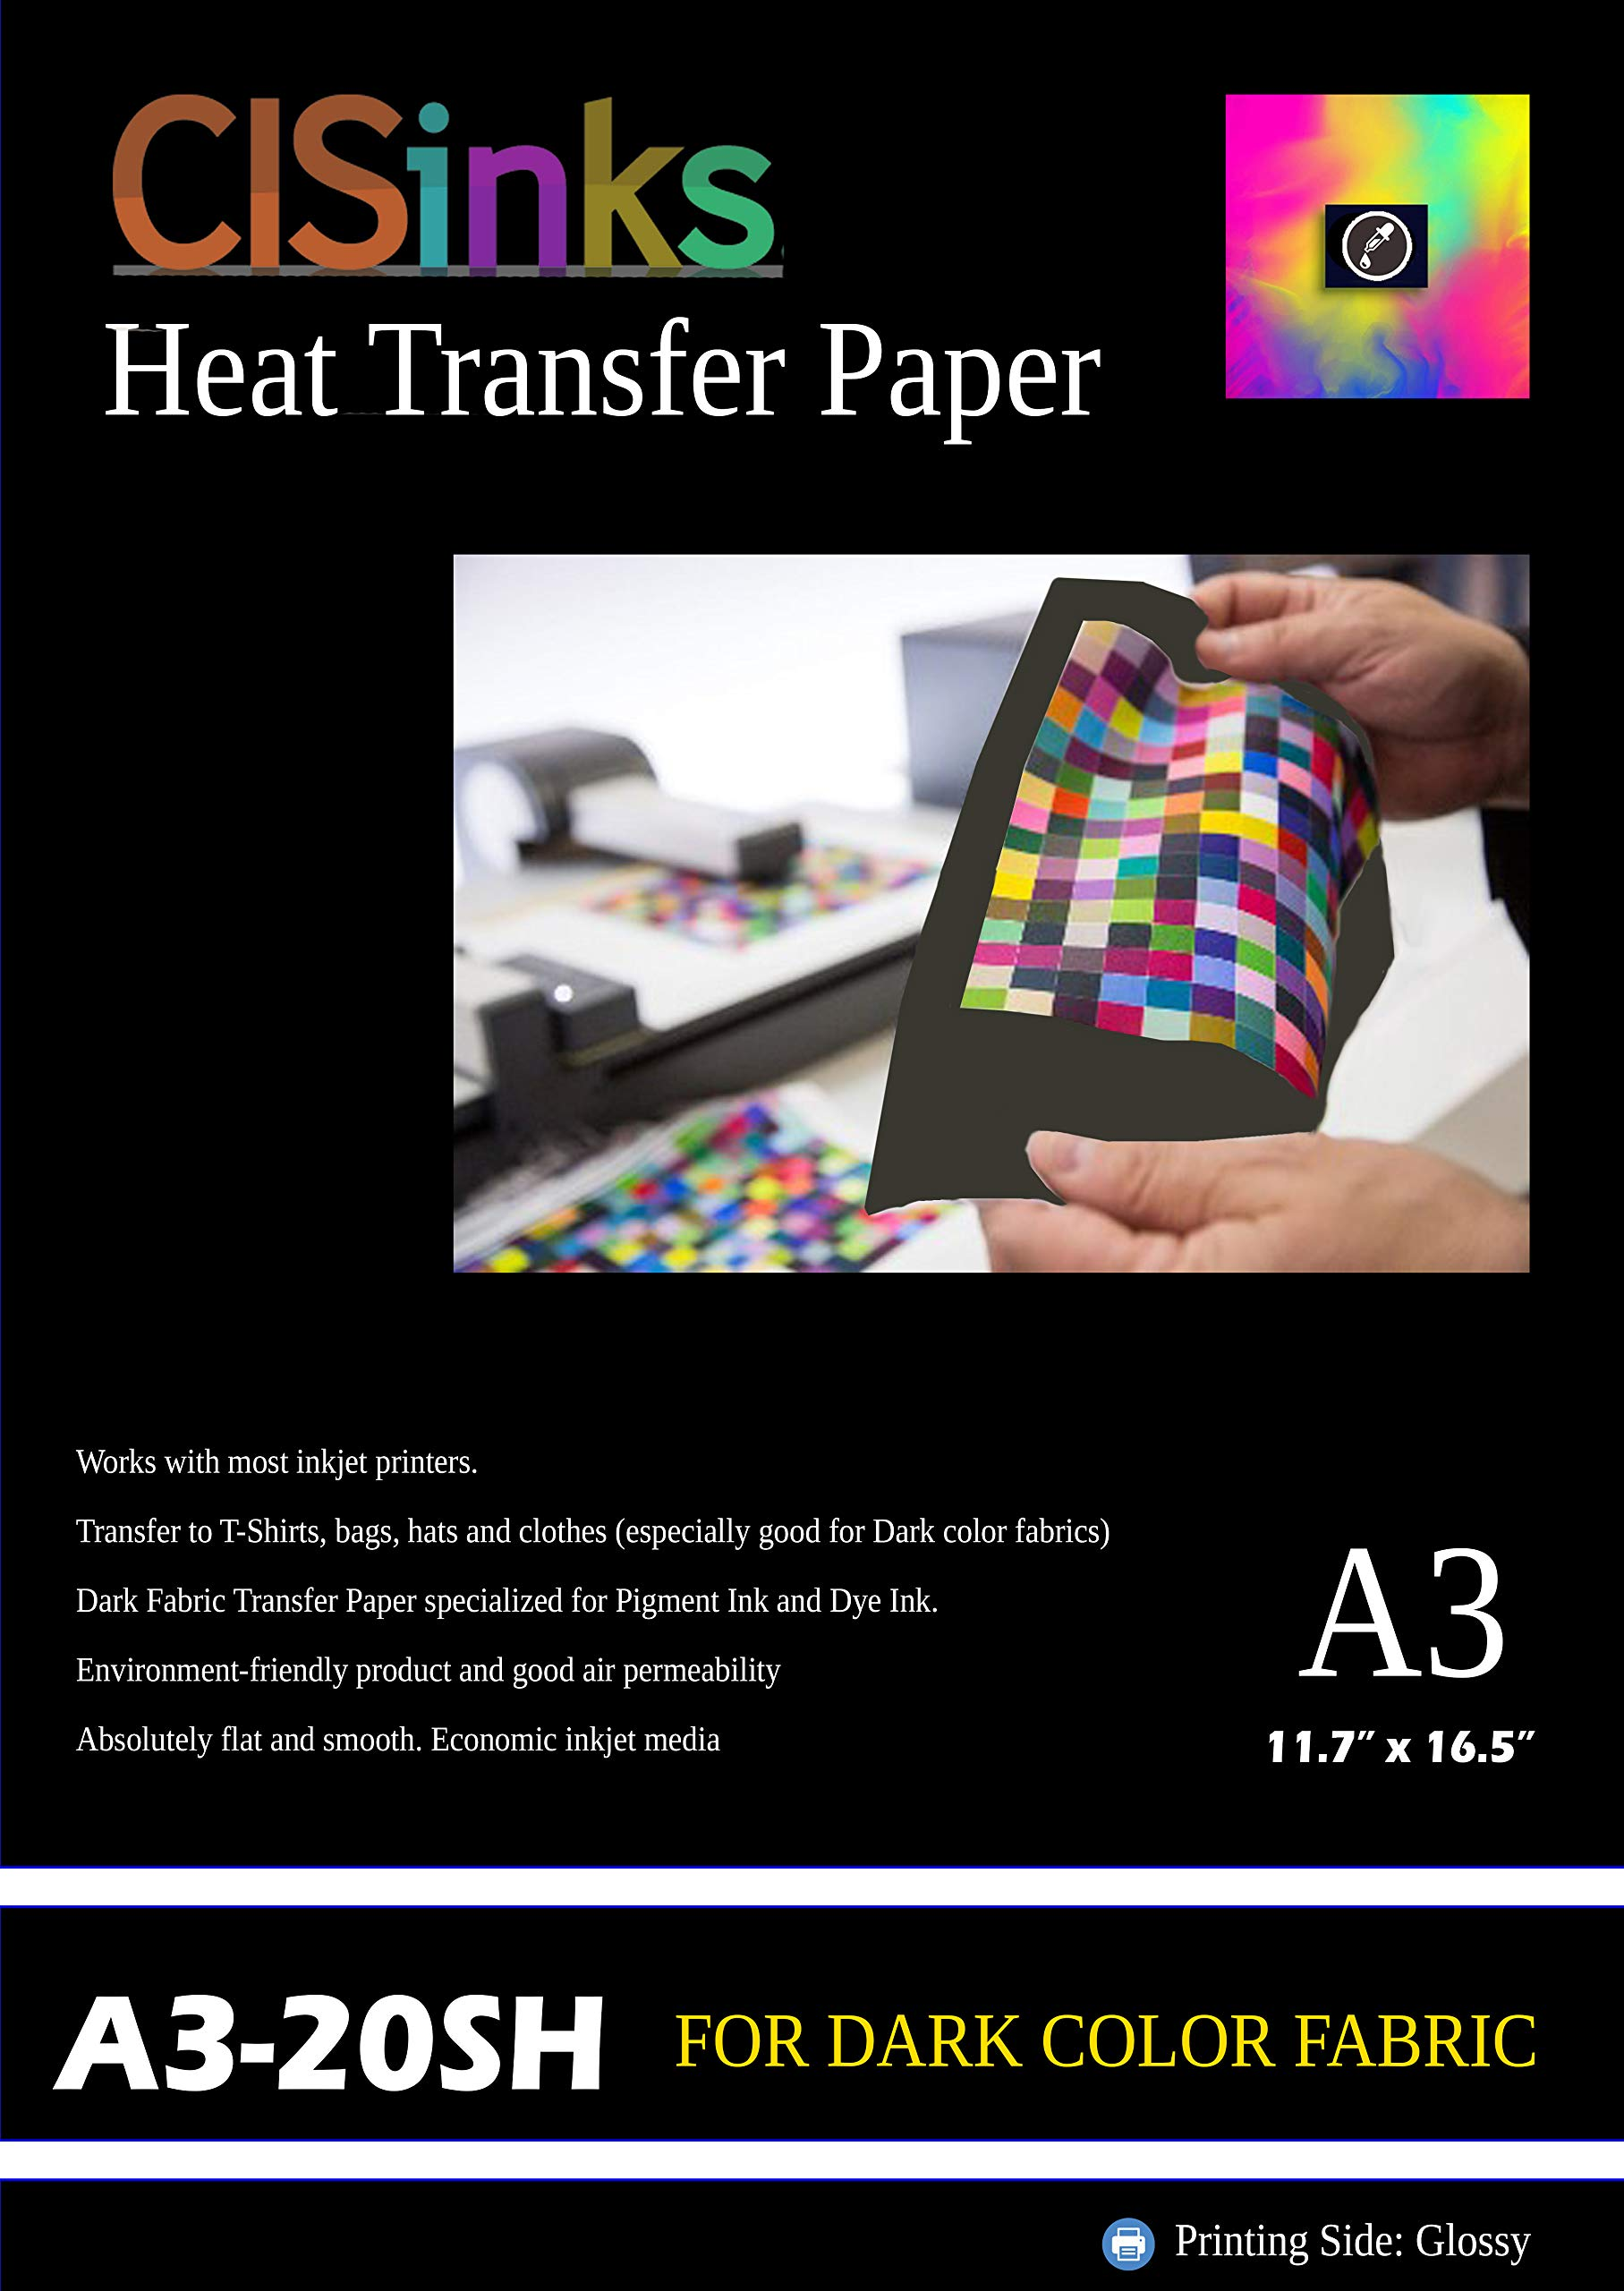 CISinks 20 Sheets Heat Transfer Paper A3 (12'' x 16.5'') for Dark Color Fabrics by CIS Inks